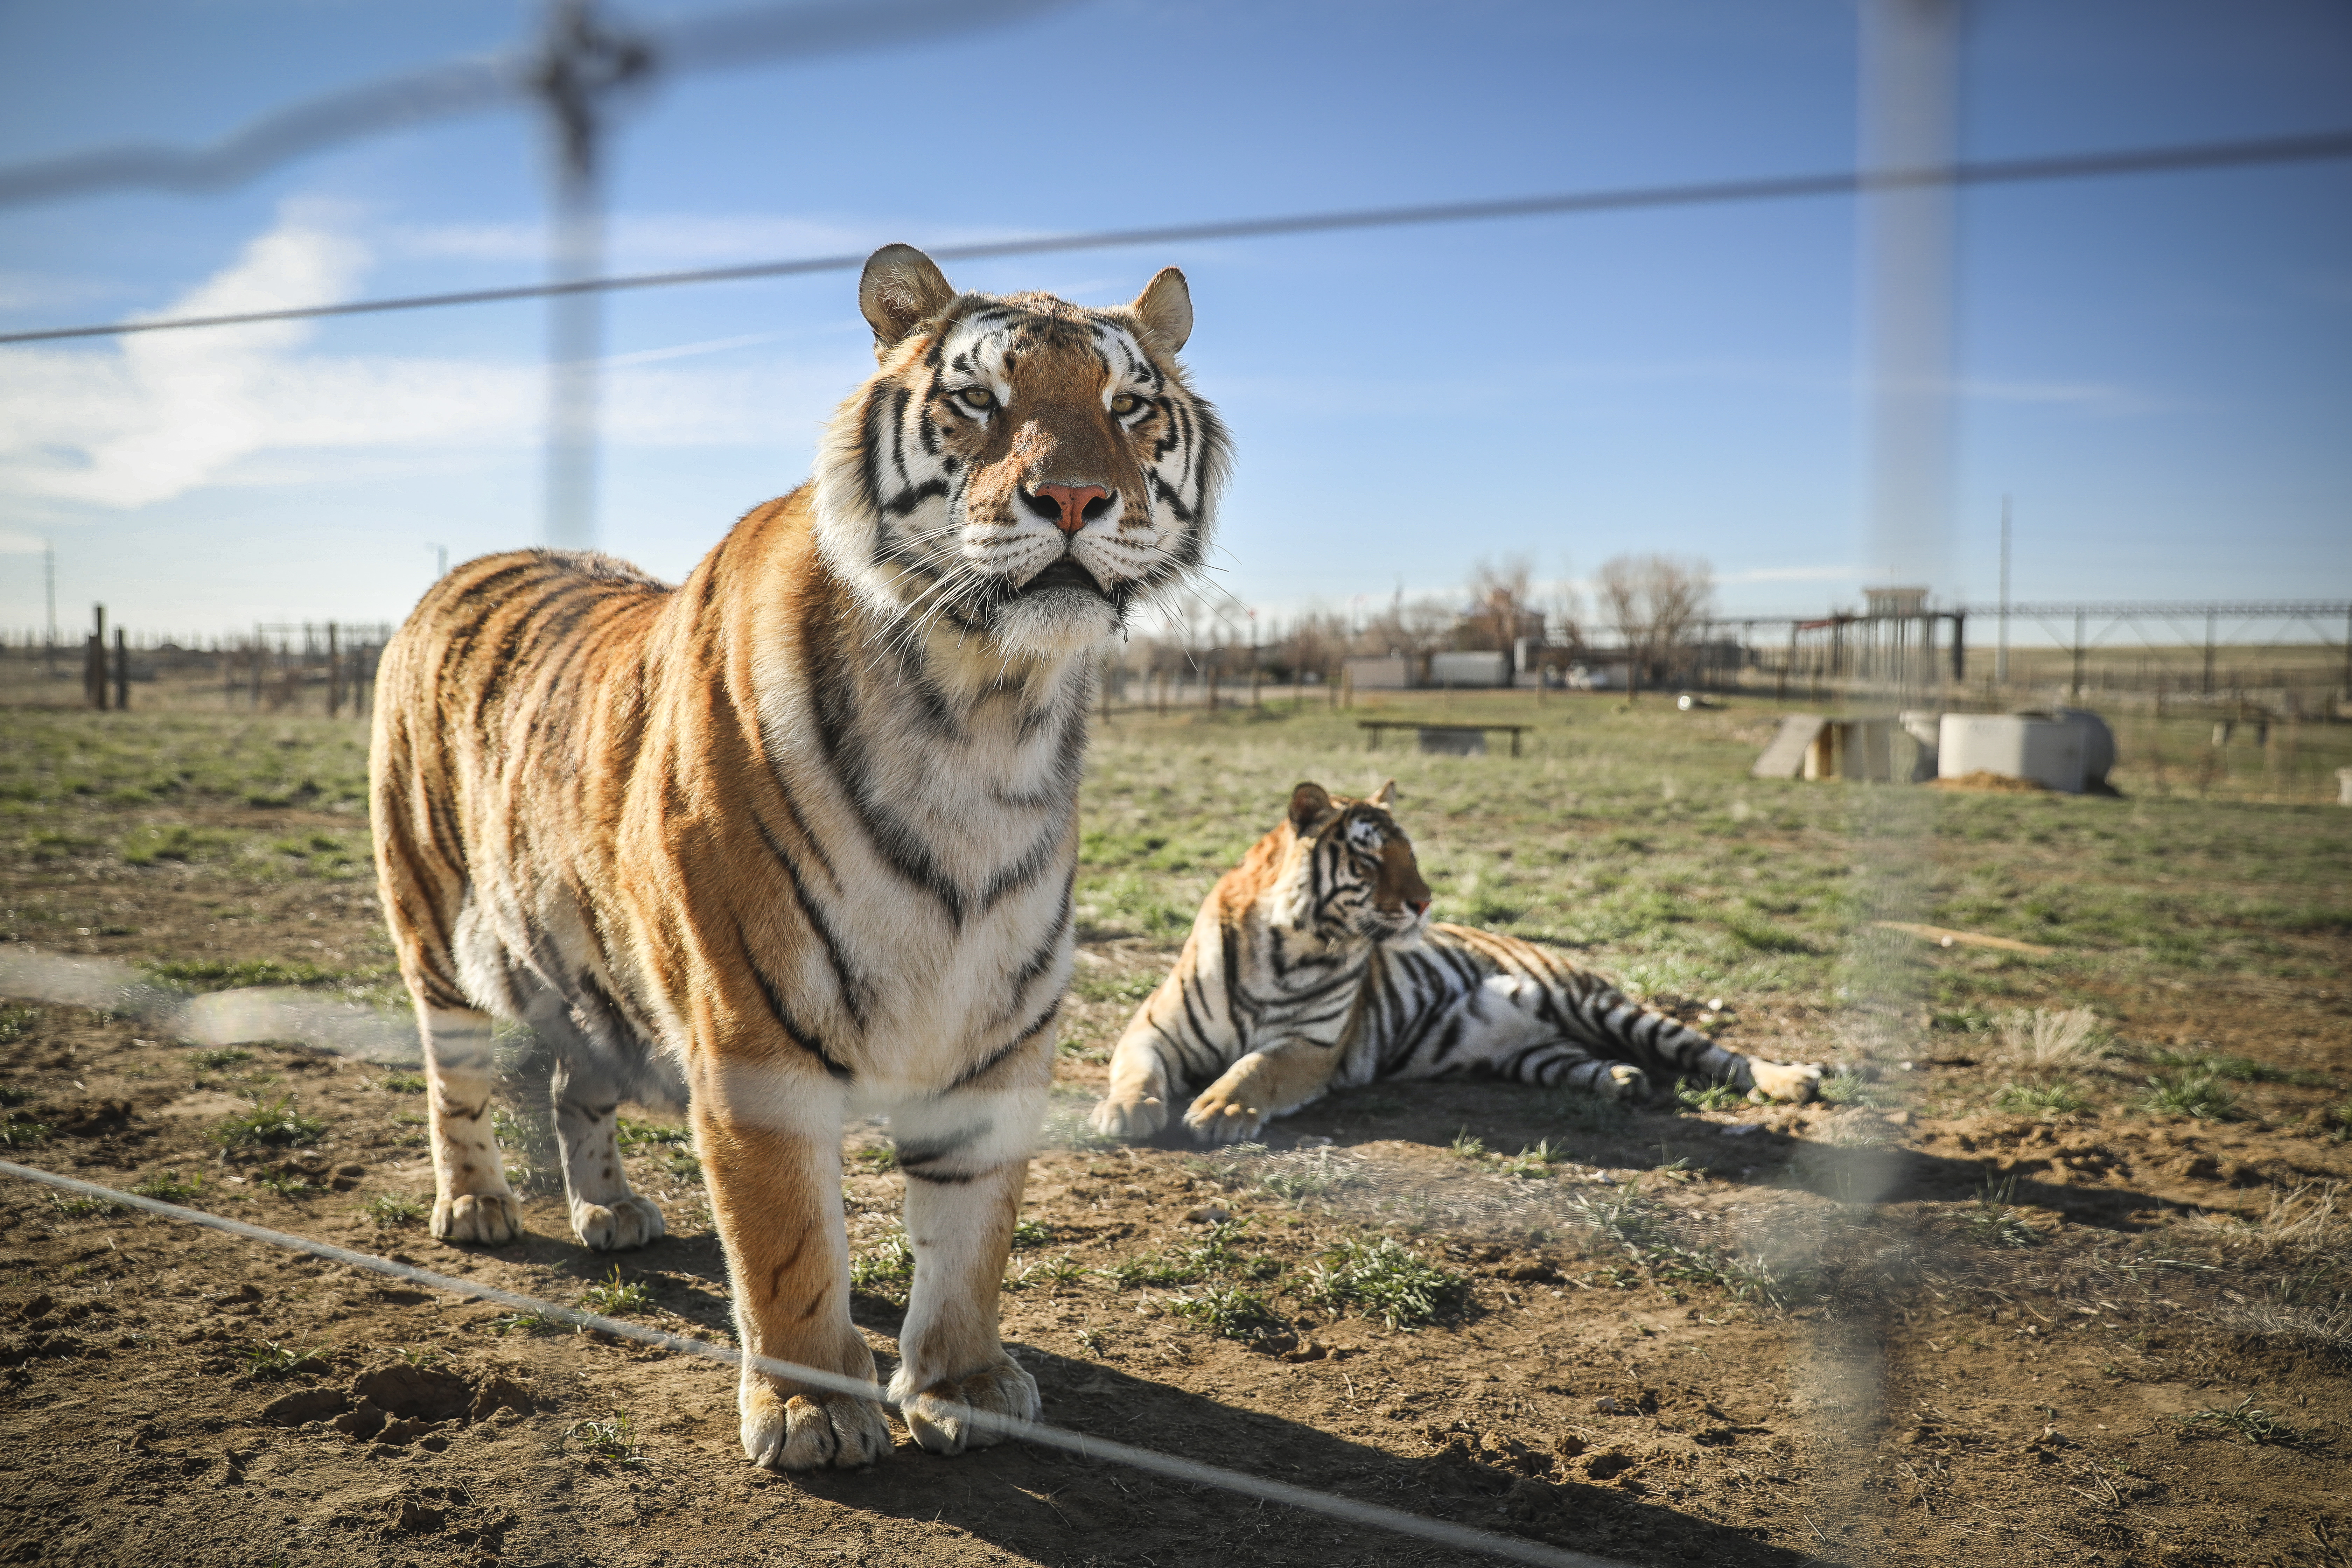 """Wild Animal Sanctuary In Colorado Home To Almost 40 Tigers From Wildly Popular Documentary Of Joe Exotic """"Tiger King"""""""